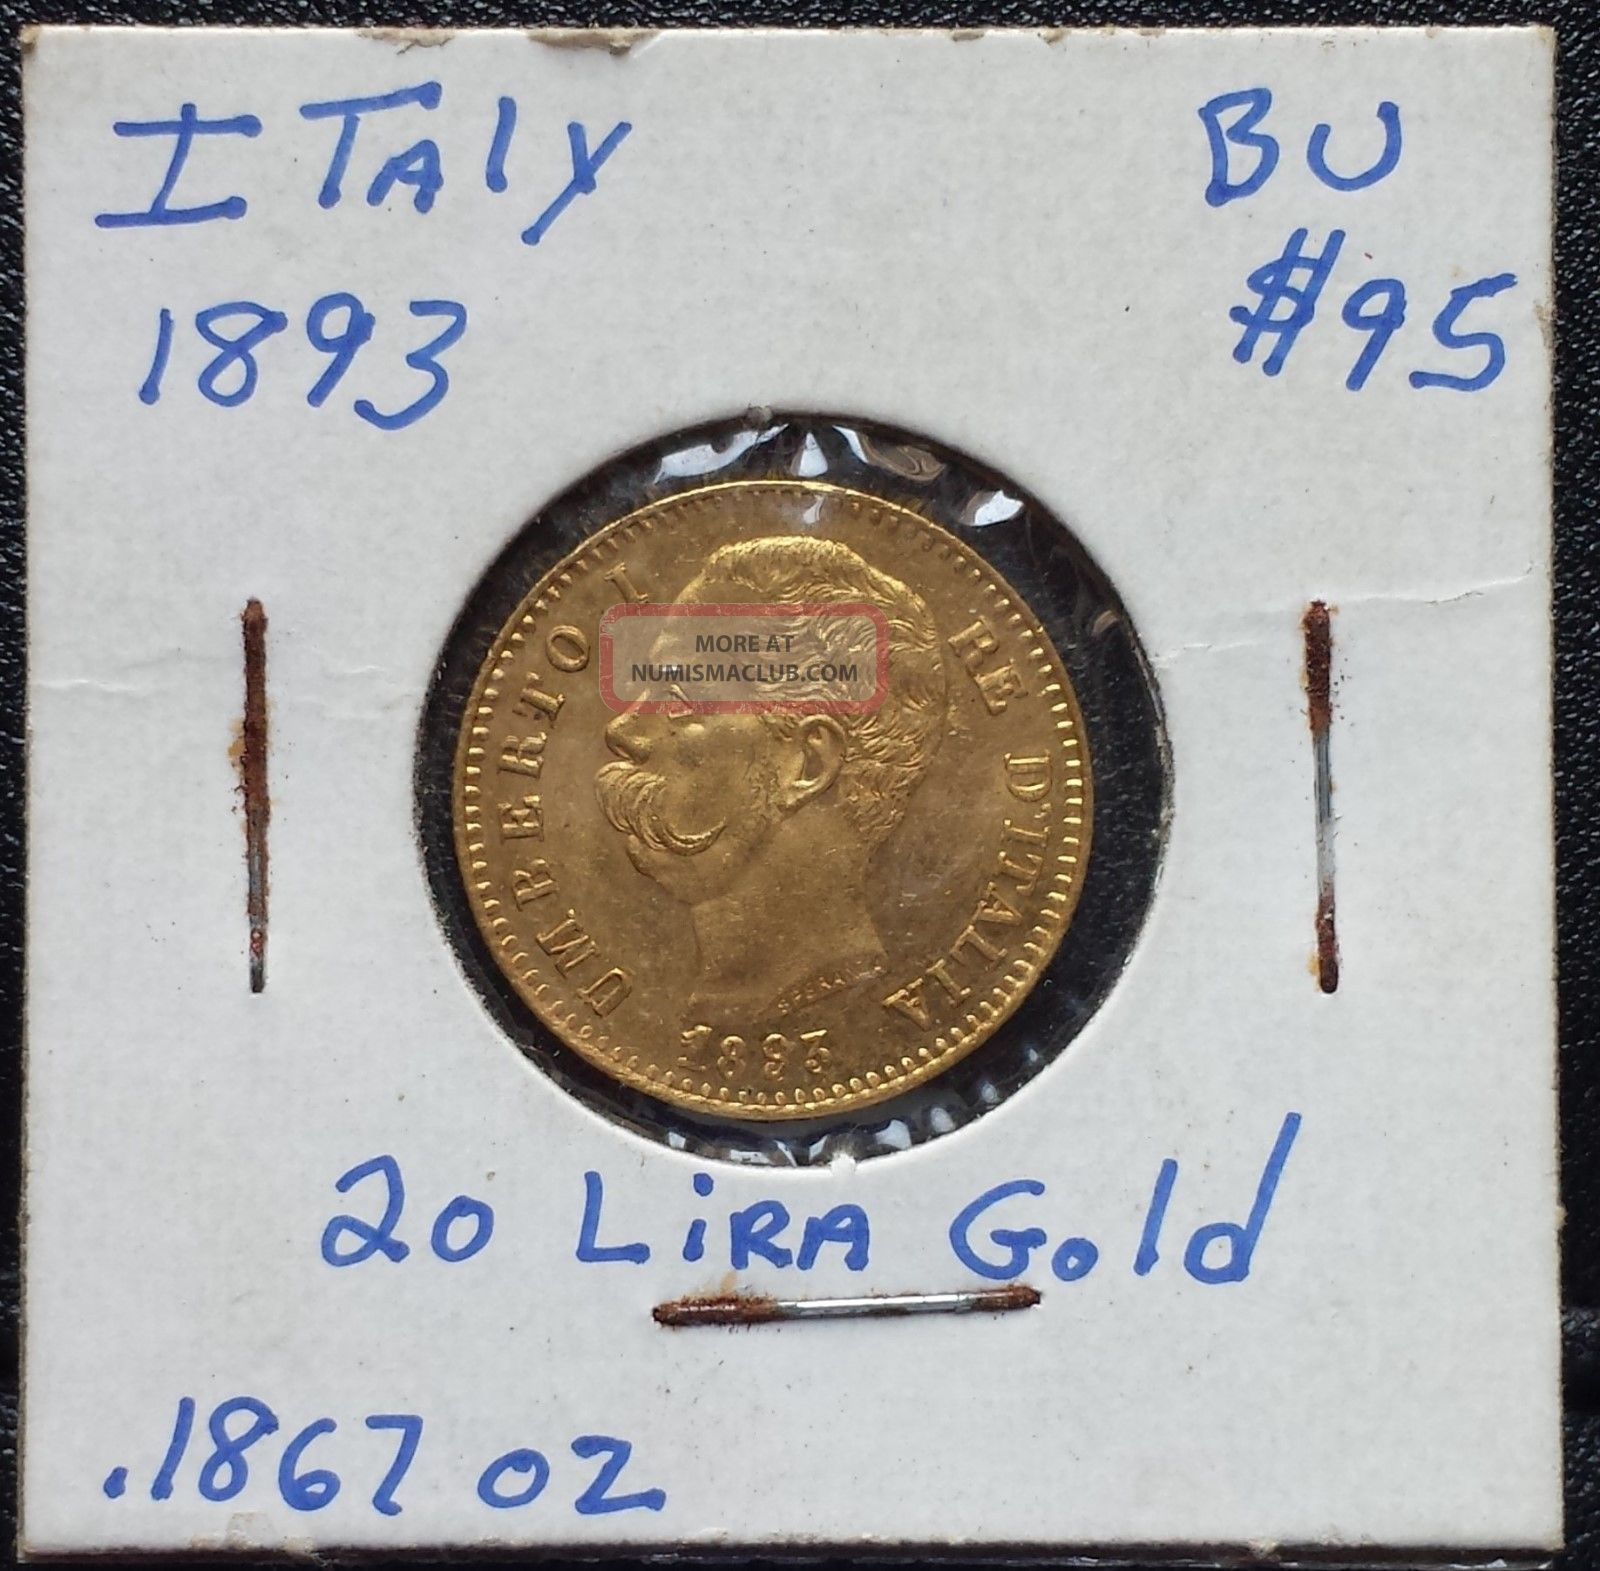 Italy 1893 20 Lire Gold King Of Italy Umberto The First Bu Uncirculated Italy, San Marino, Vatican photo